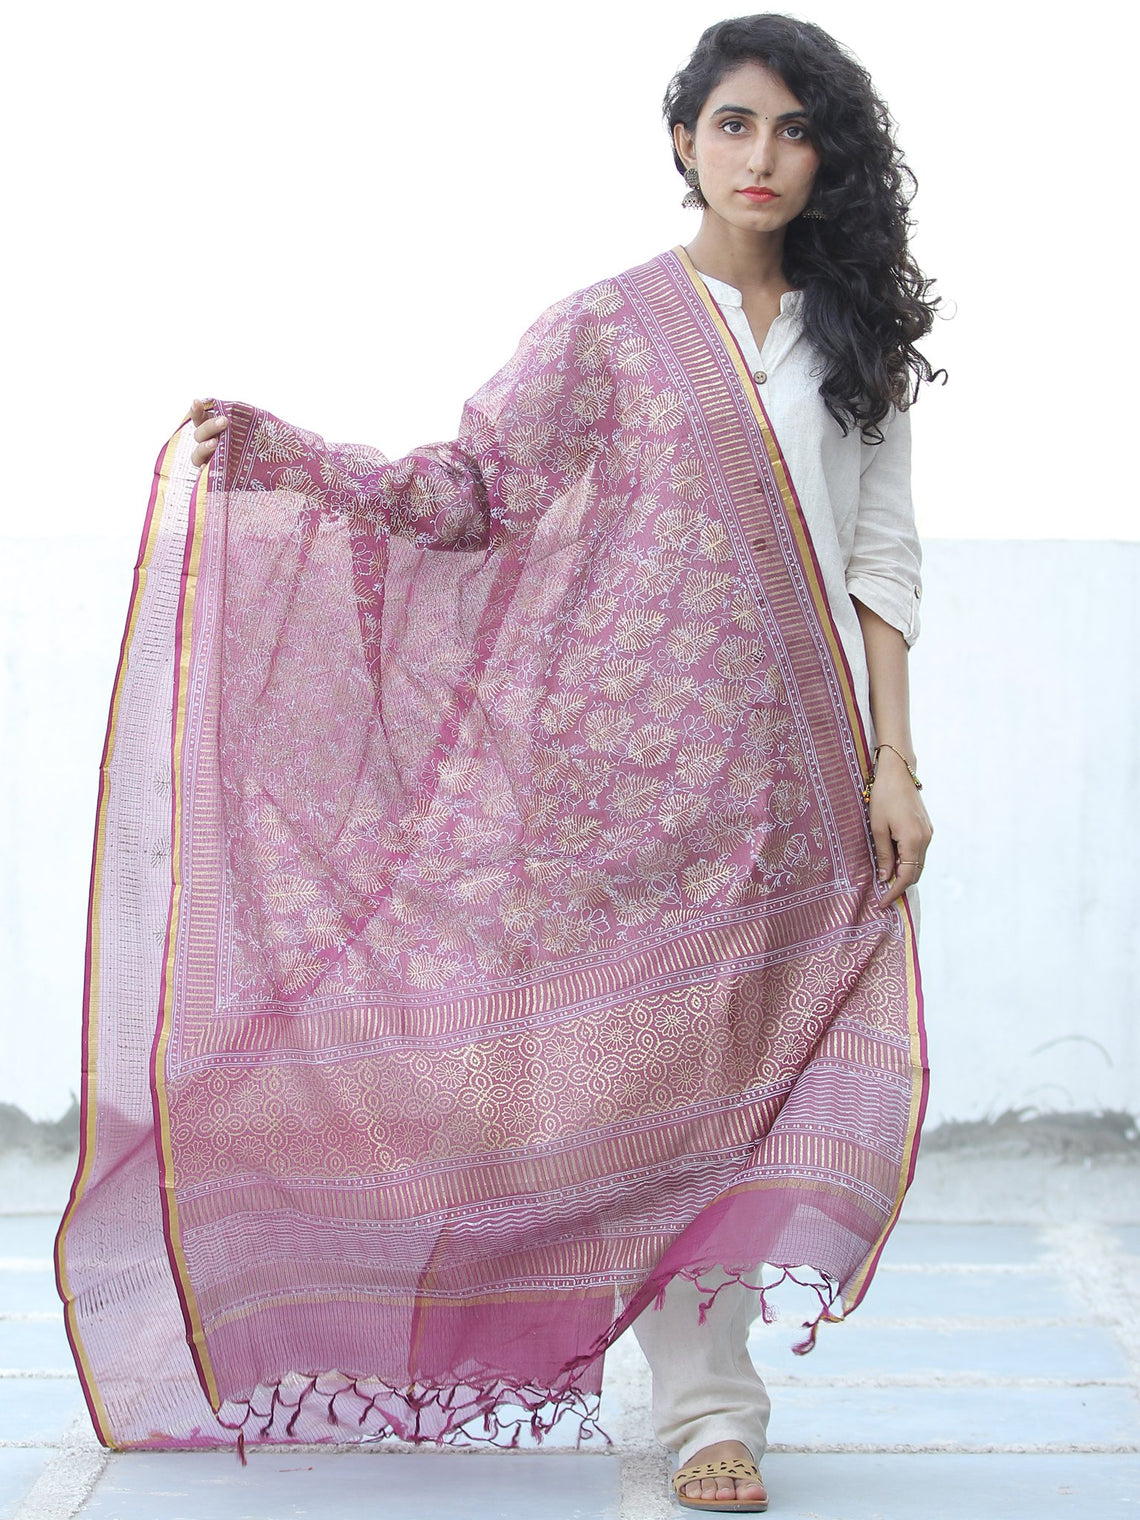 Onion Pink Golden Kota Silk Hand Block Printed Dupatta - D04170653